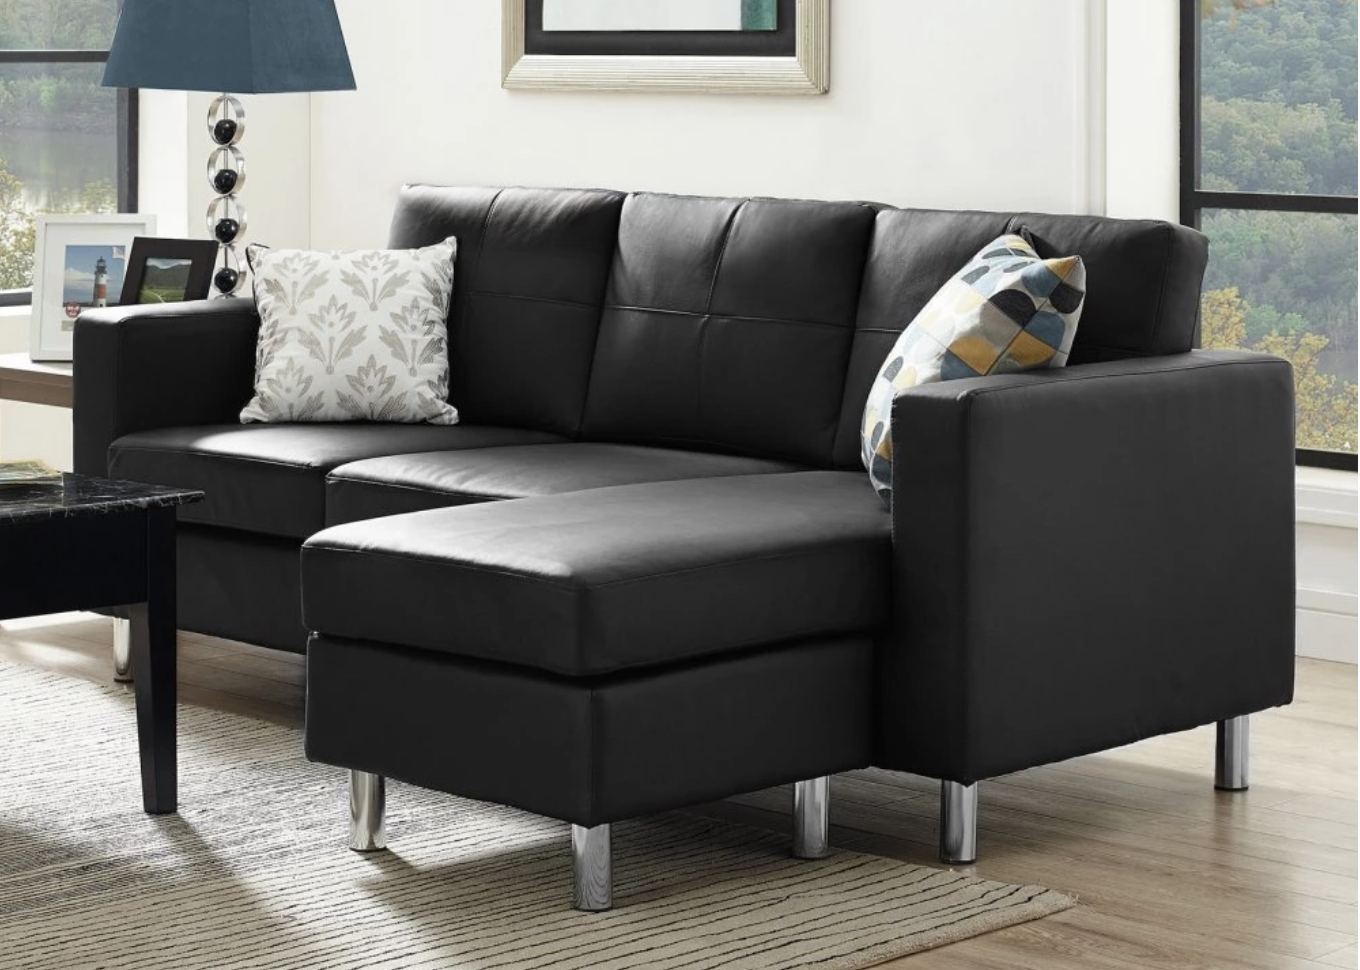 Canada Sectional Sofas For Small Spaces Regarding Newest 75 Modern Sectional Sofas For Small Spaces (2018) (View 12 of 20)